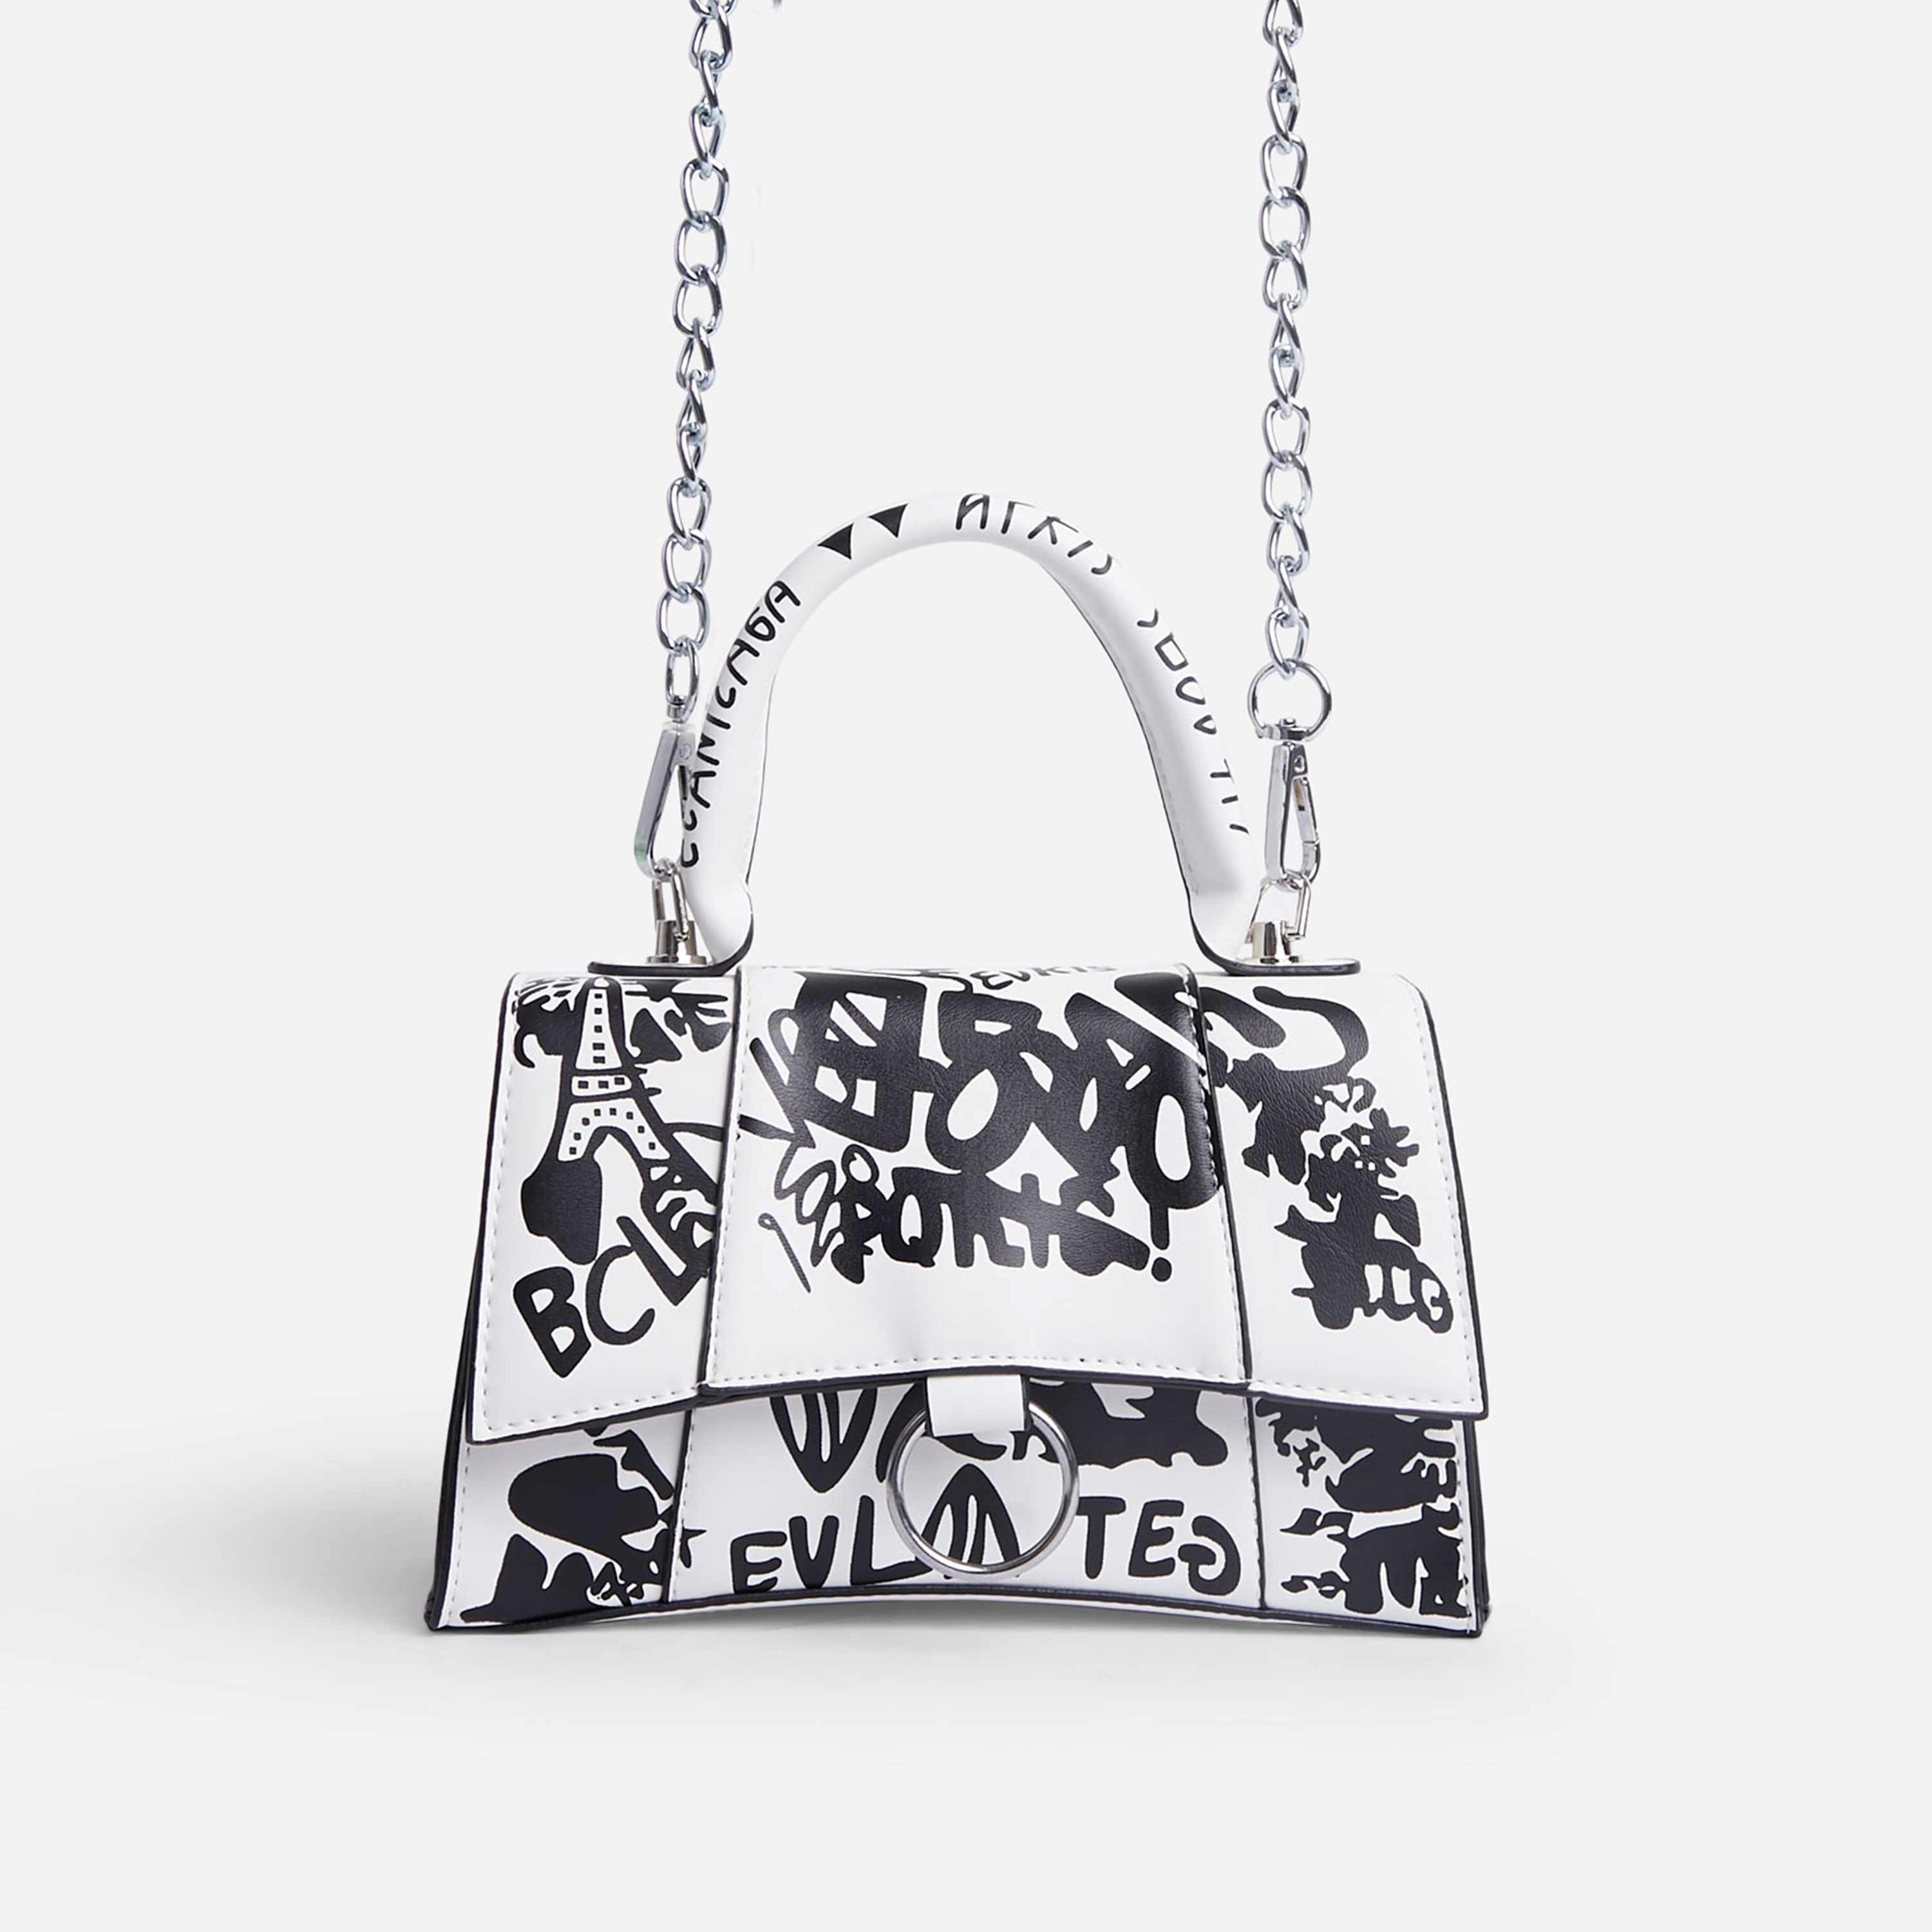 Scribble Chain Detail Graffiti Handbag In White Faux Leather